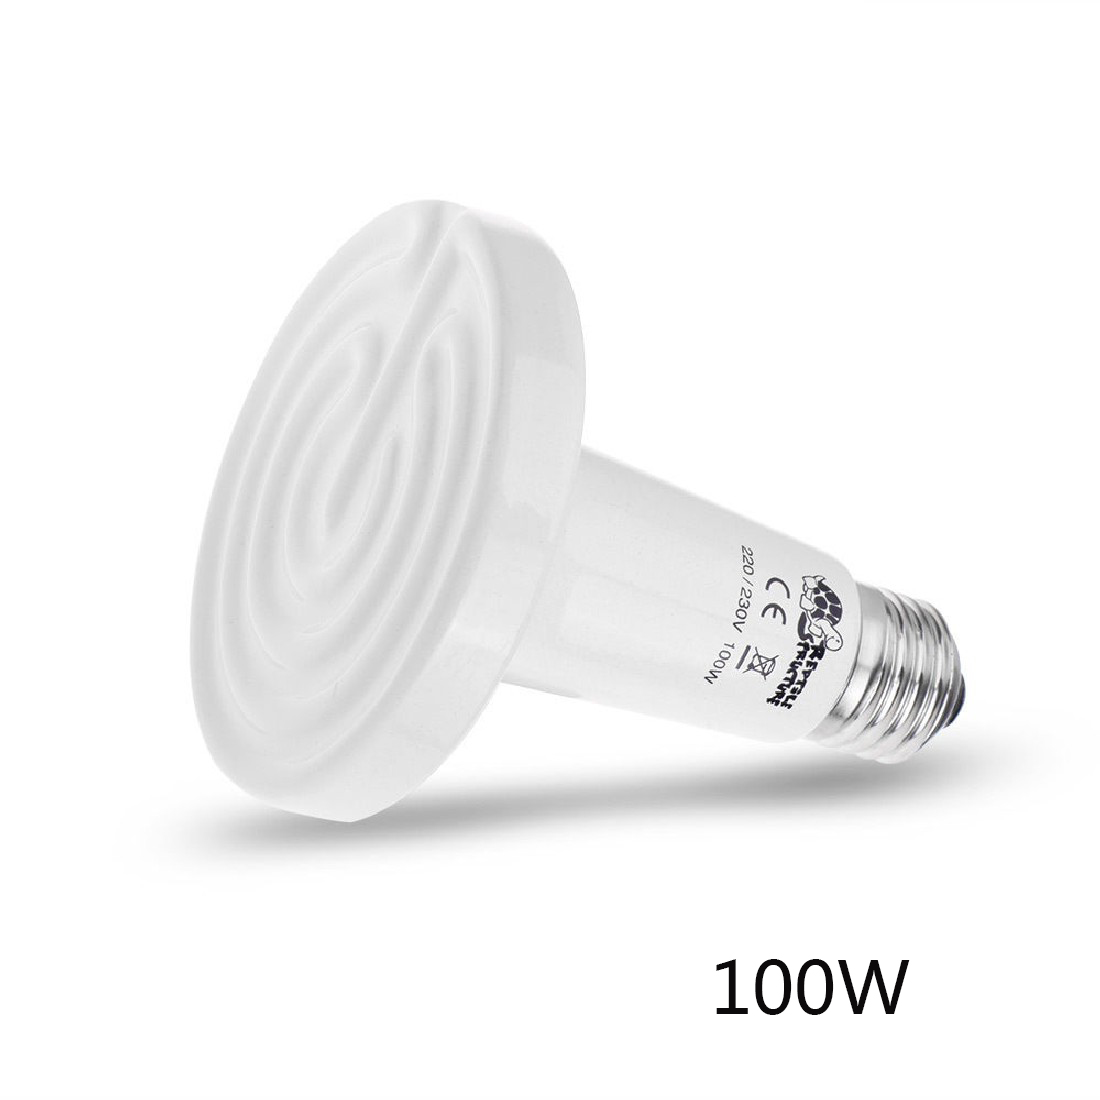 New Brand 100W Ceramic Emitter Heat Lamp Reptile Heater White High Quality